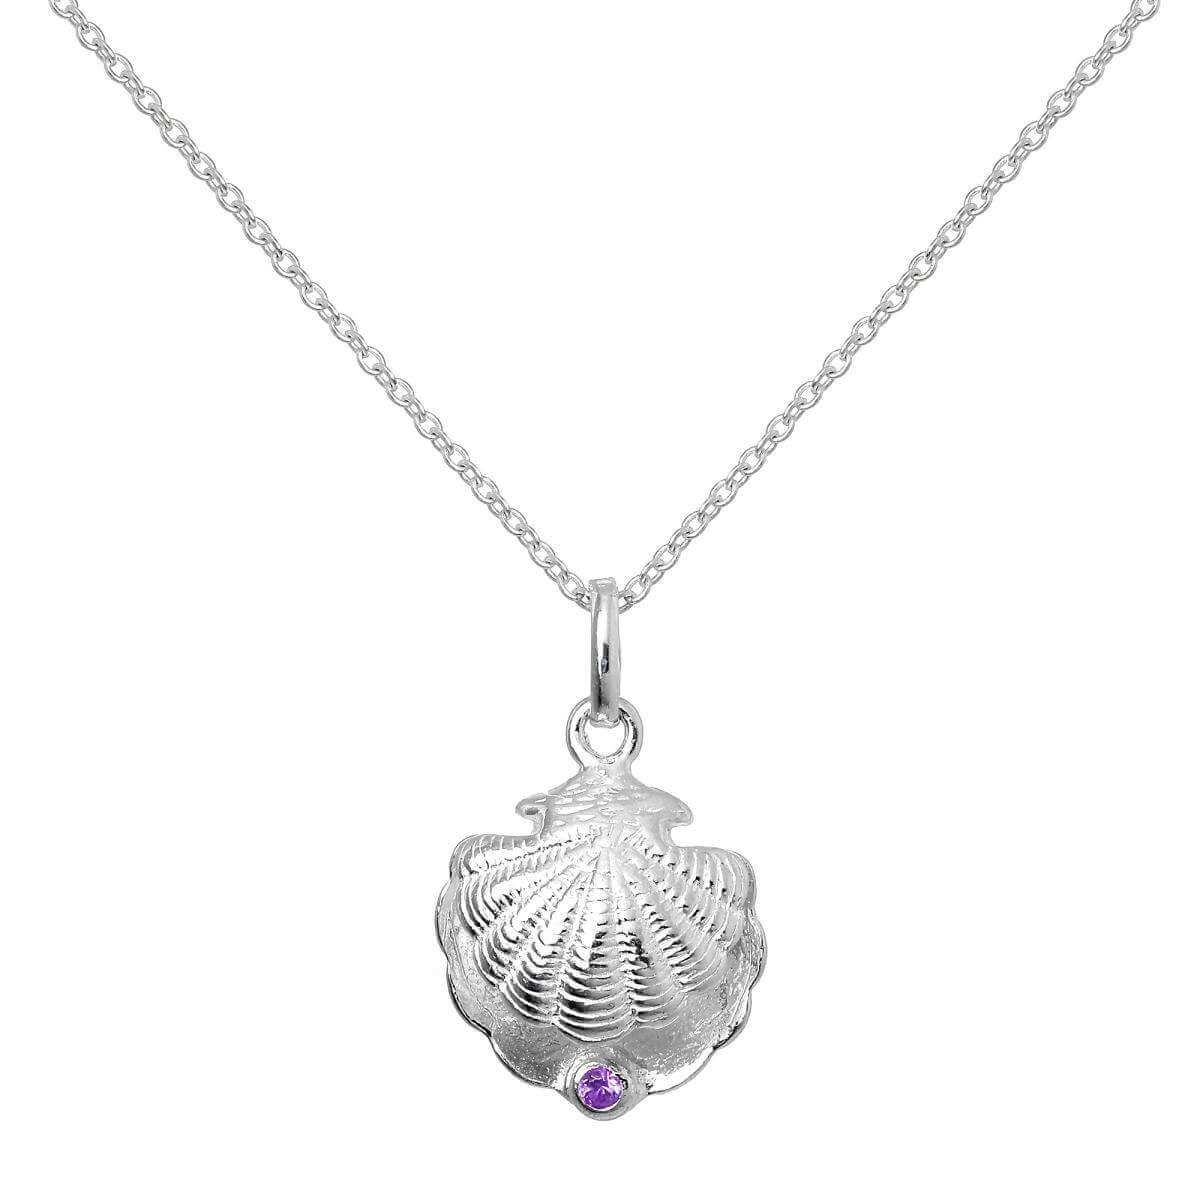 Sterling Silver Oyster Shell with CZ Crystal Amethyst Birthstone Necklace - 20 Inches